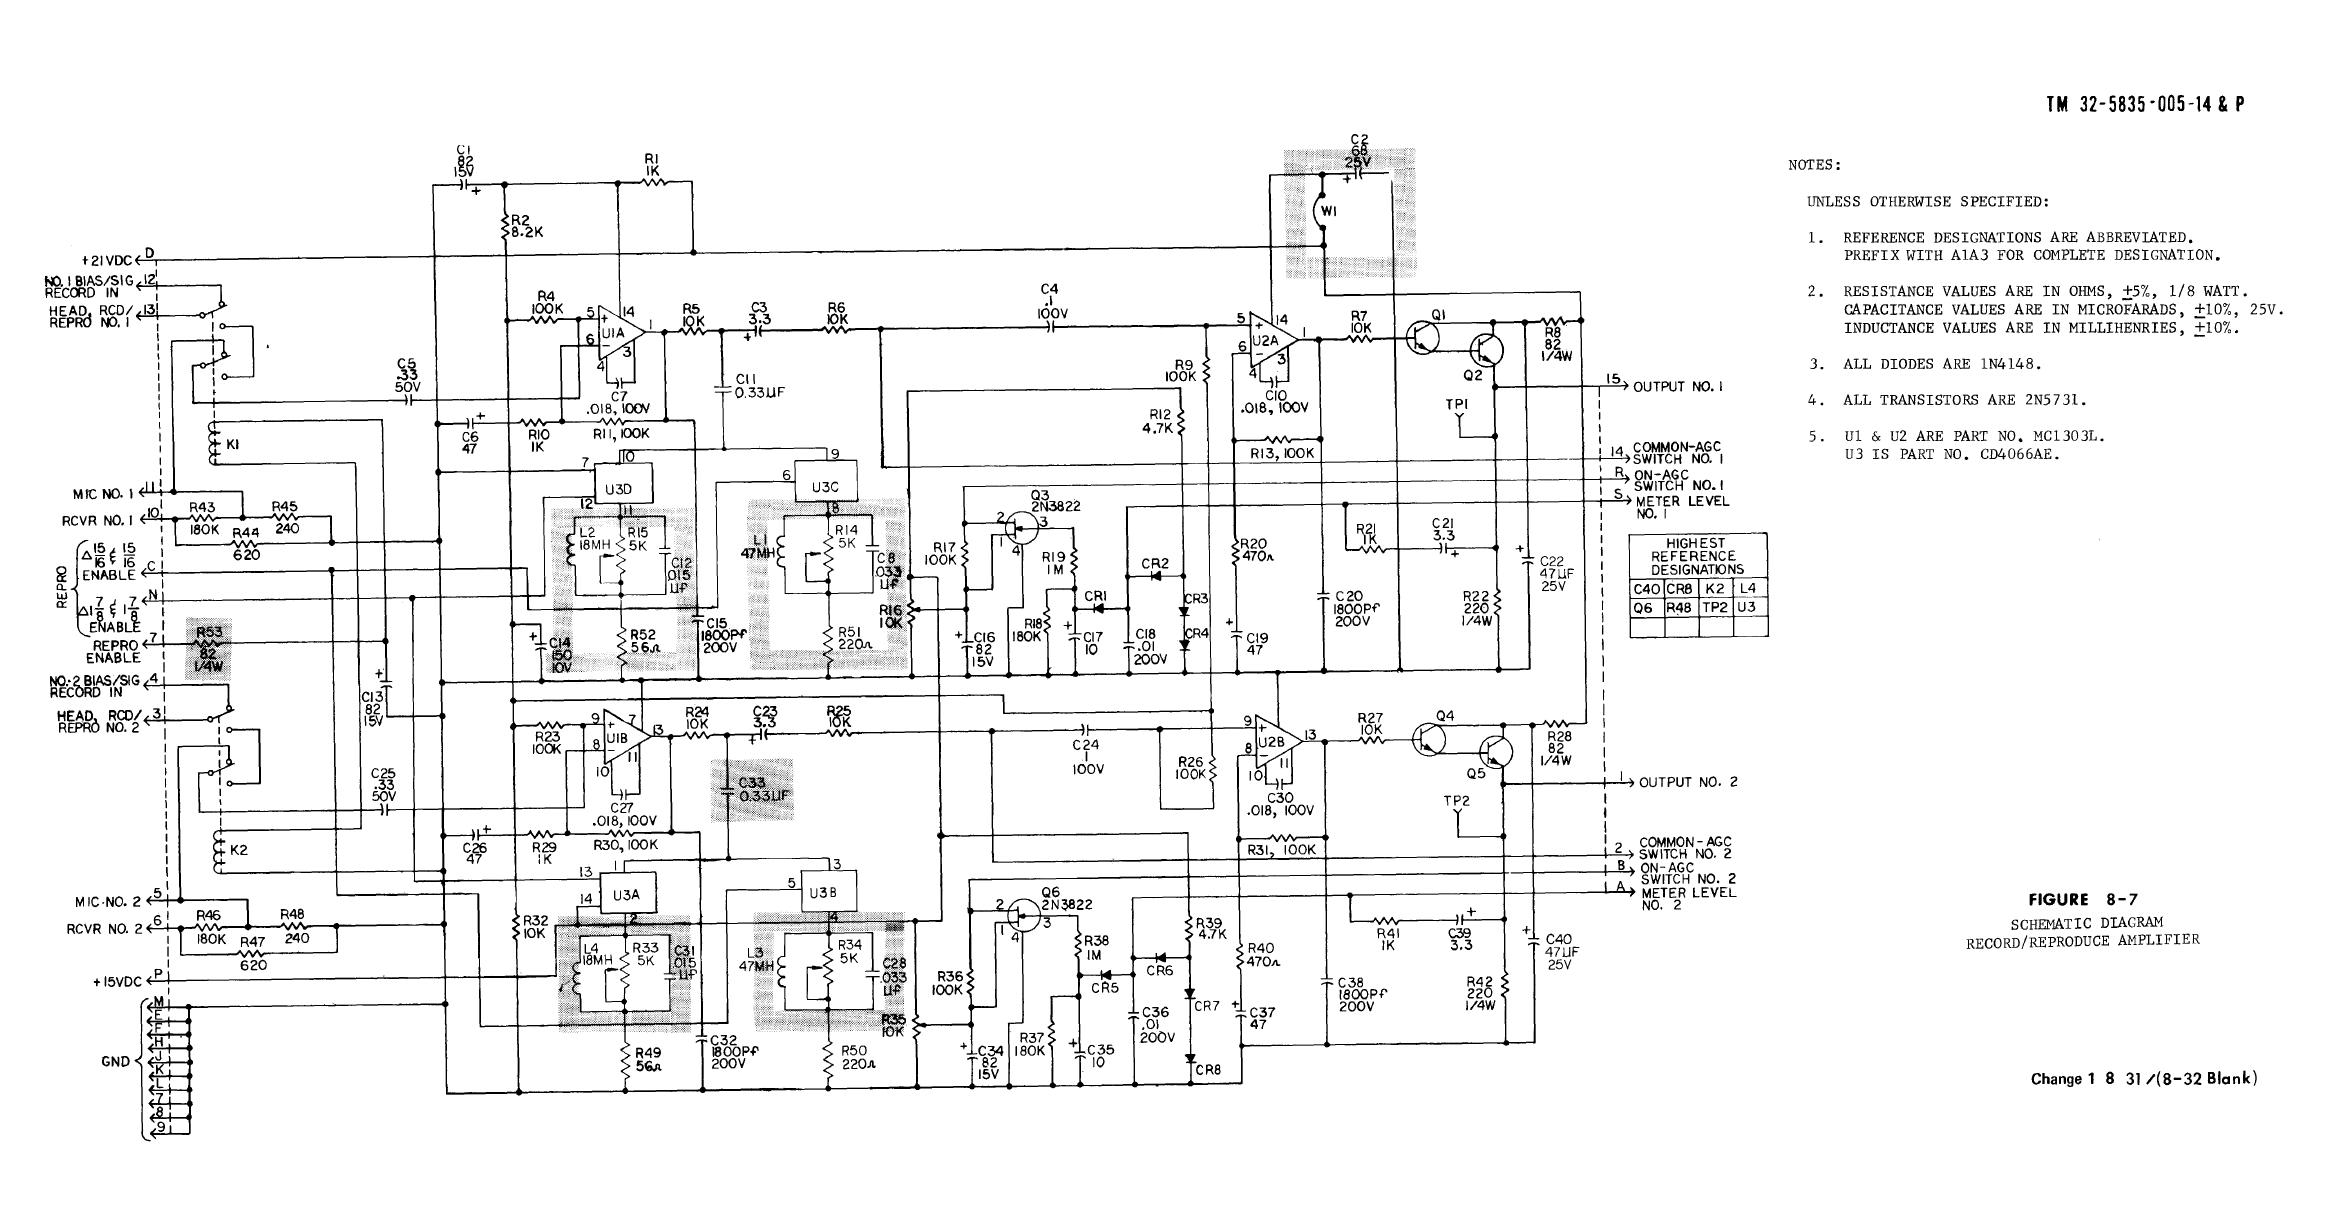 Figure 8 7 Schematic Diagram Record Reproduce Amplifier